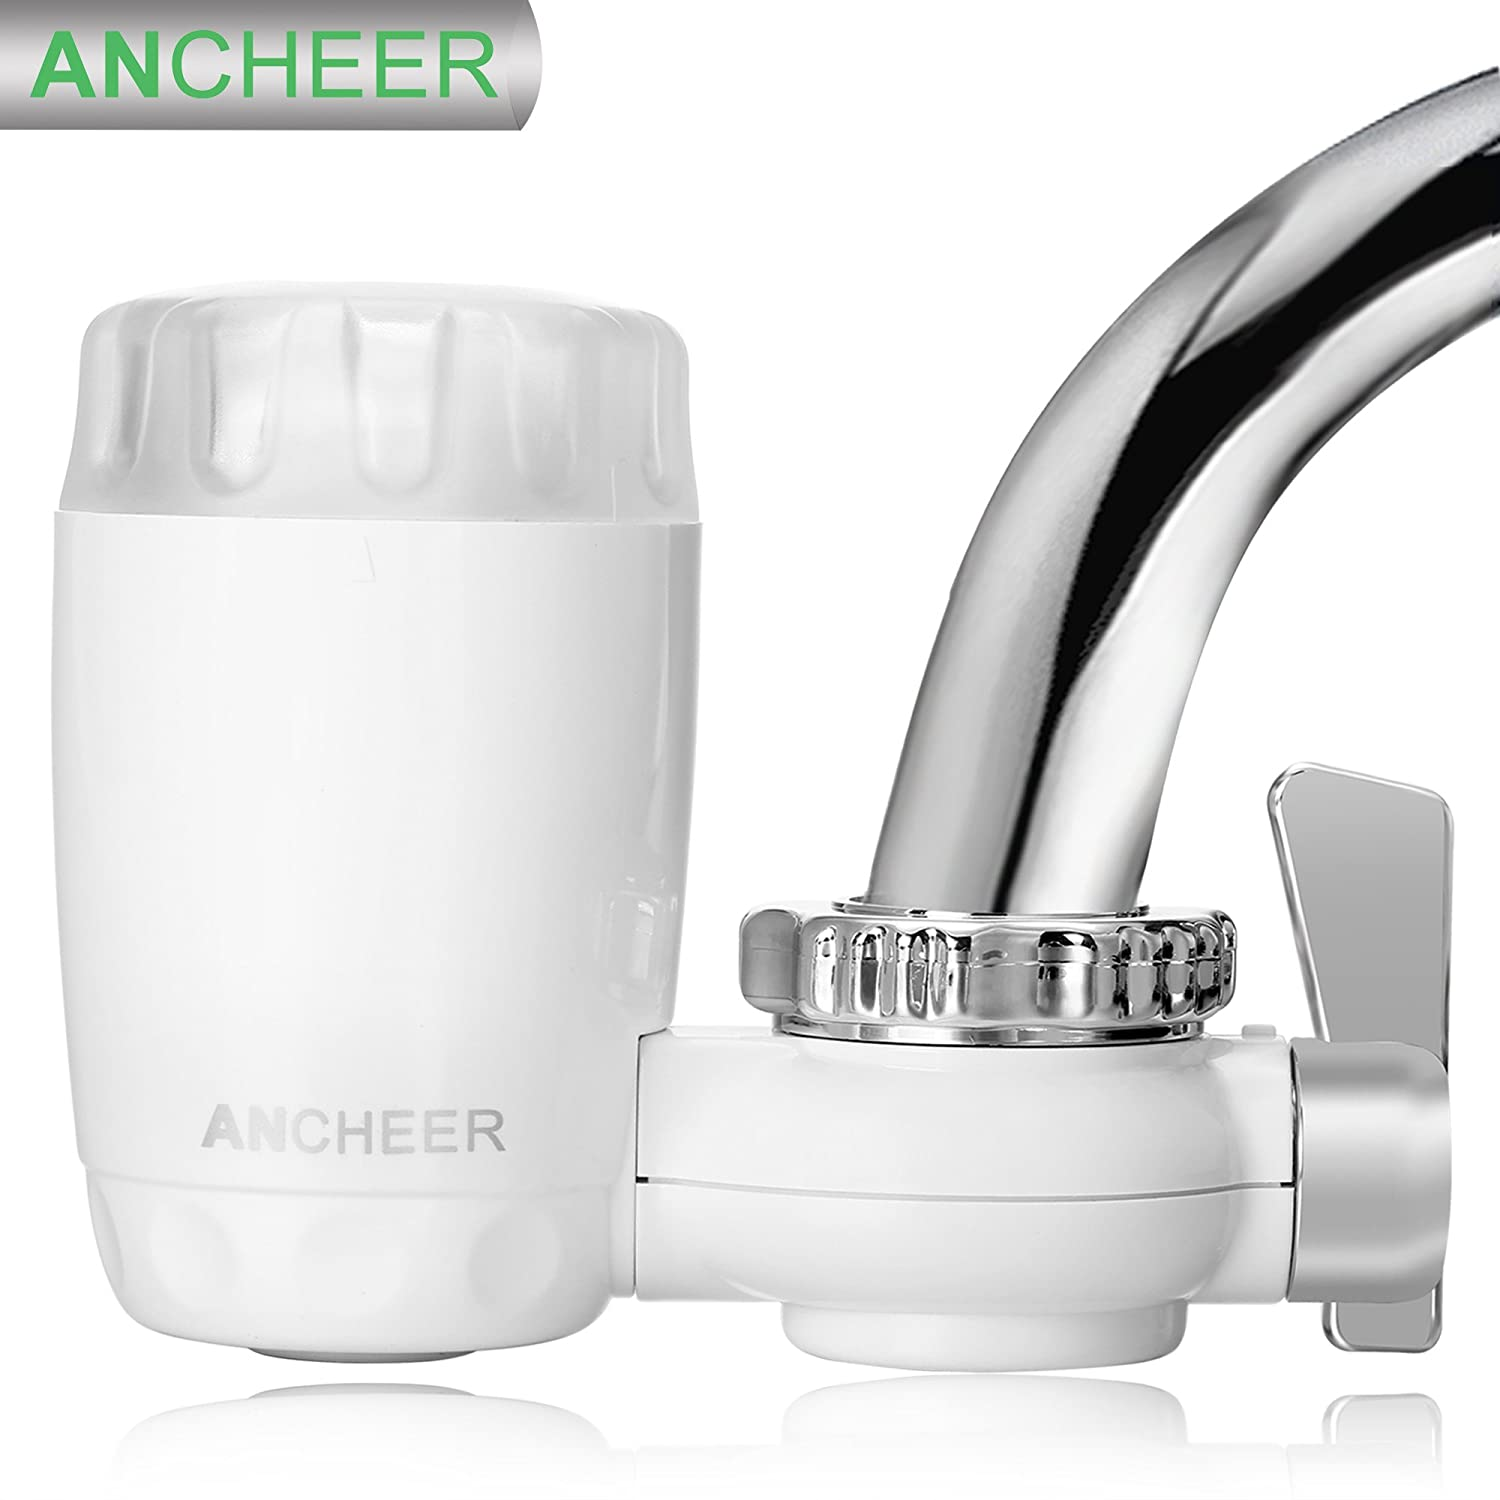 en in faucet filters best filter detail fi price water product us ff taiwan alyawater of portable the